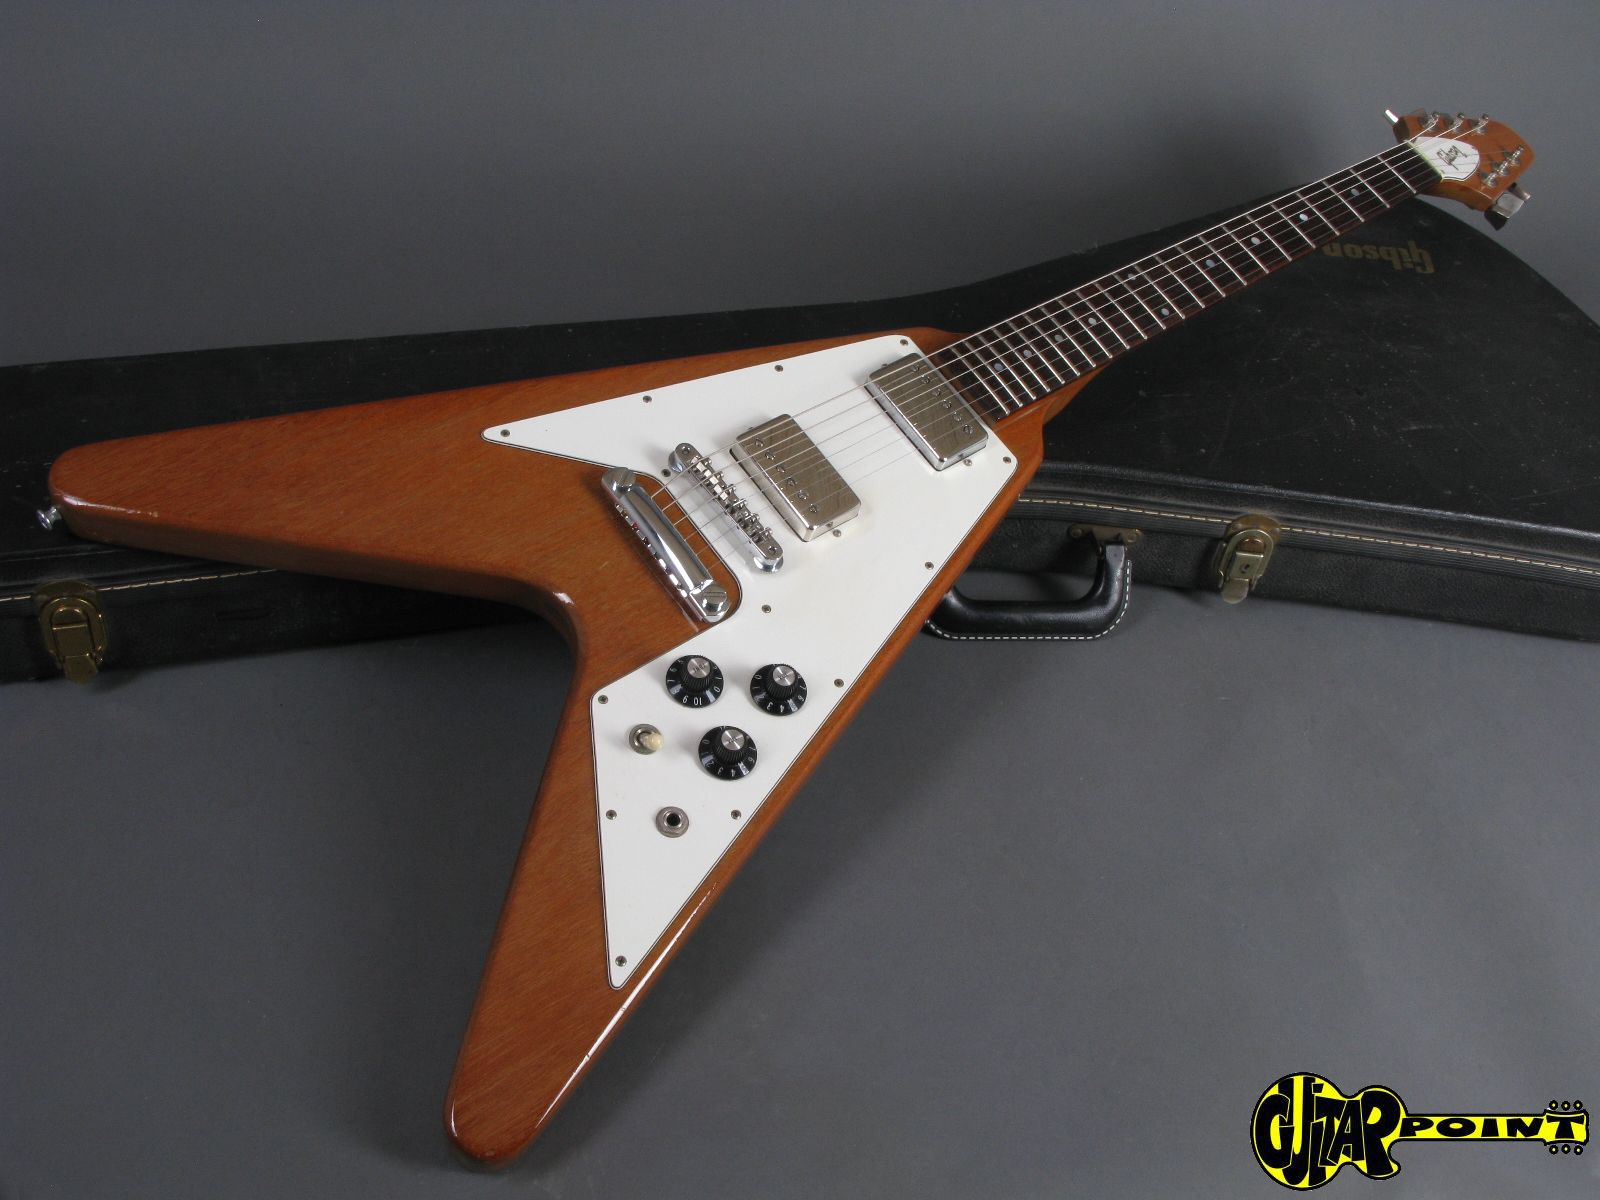 gibson flying v 1980 natural guitar for sale guitarpoint. Black Bedroom Furniture Sets. Home Design Ideas